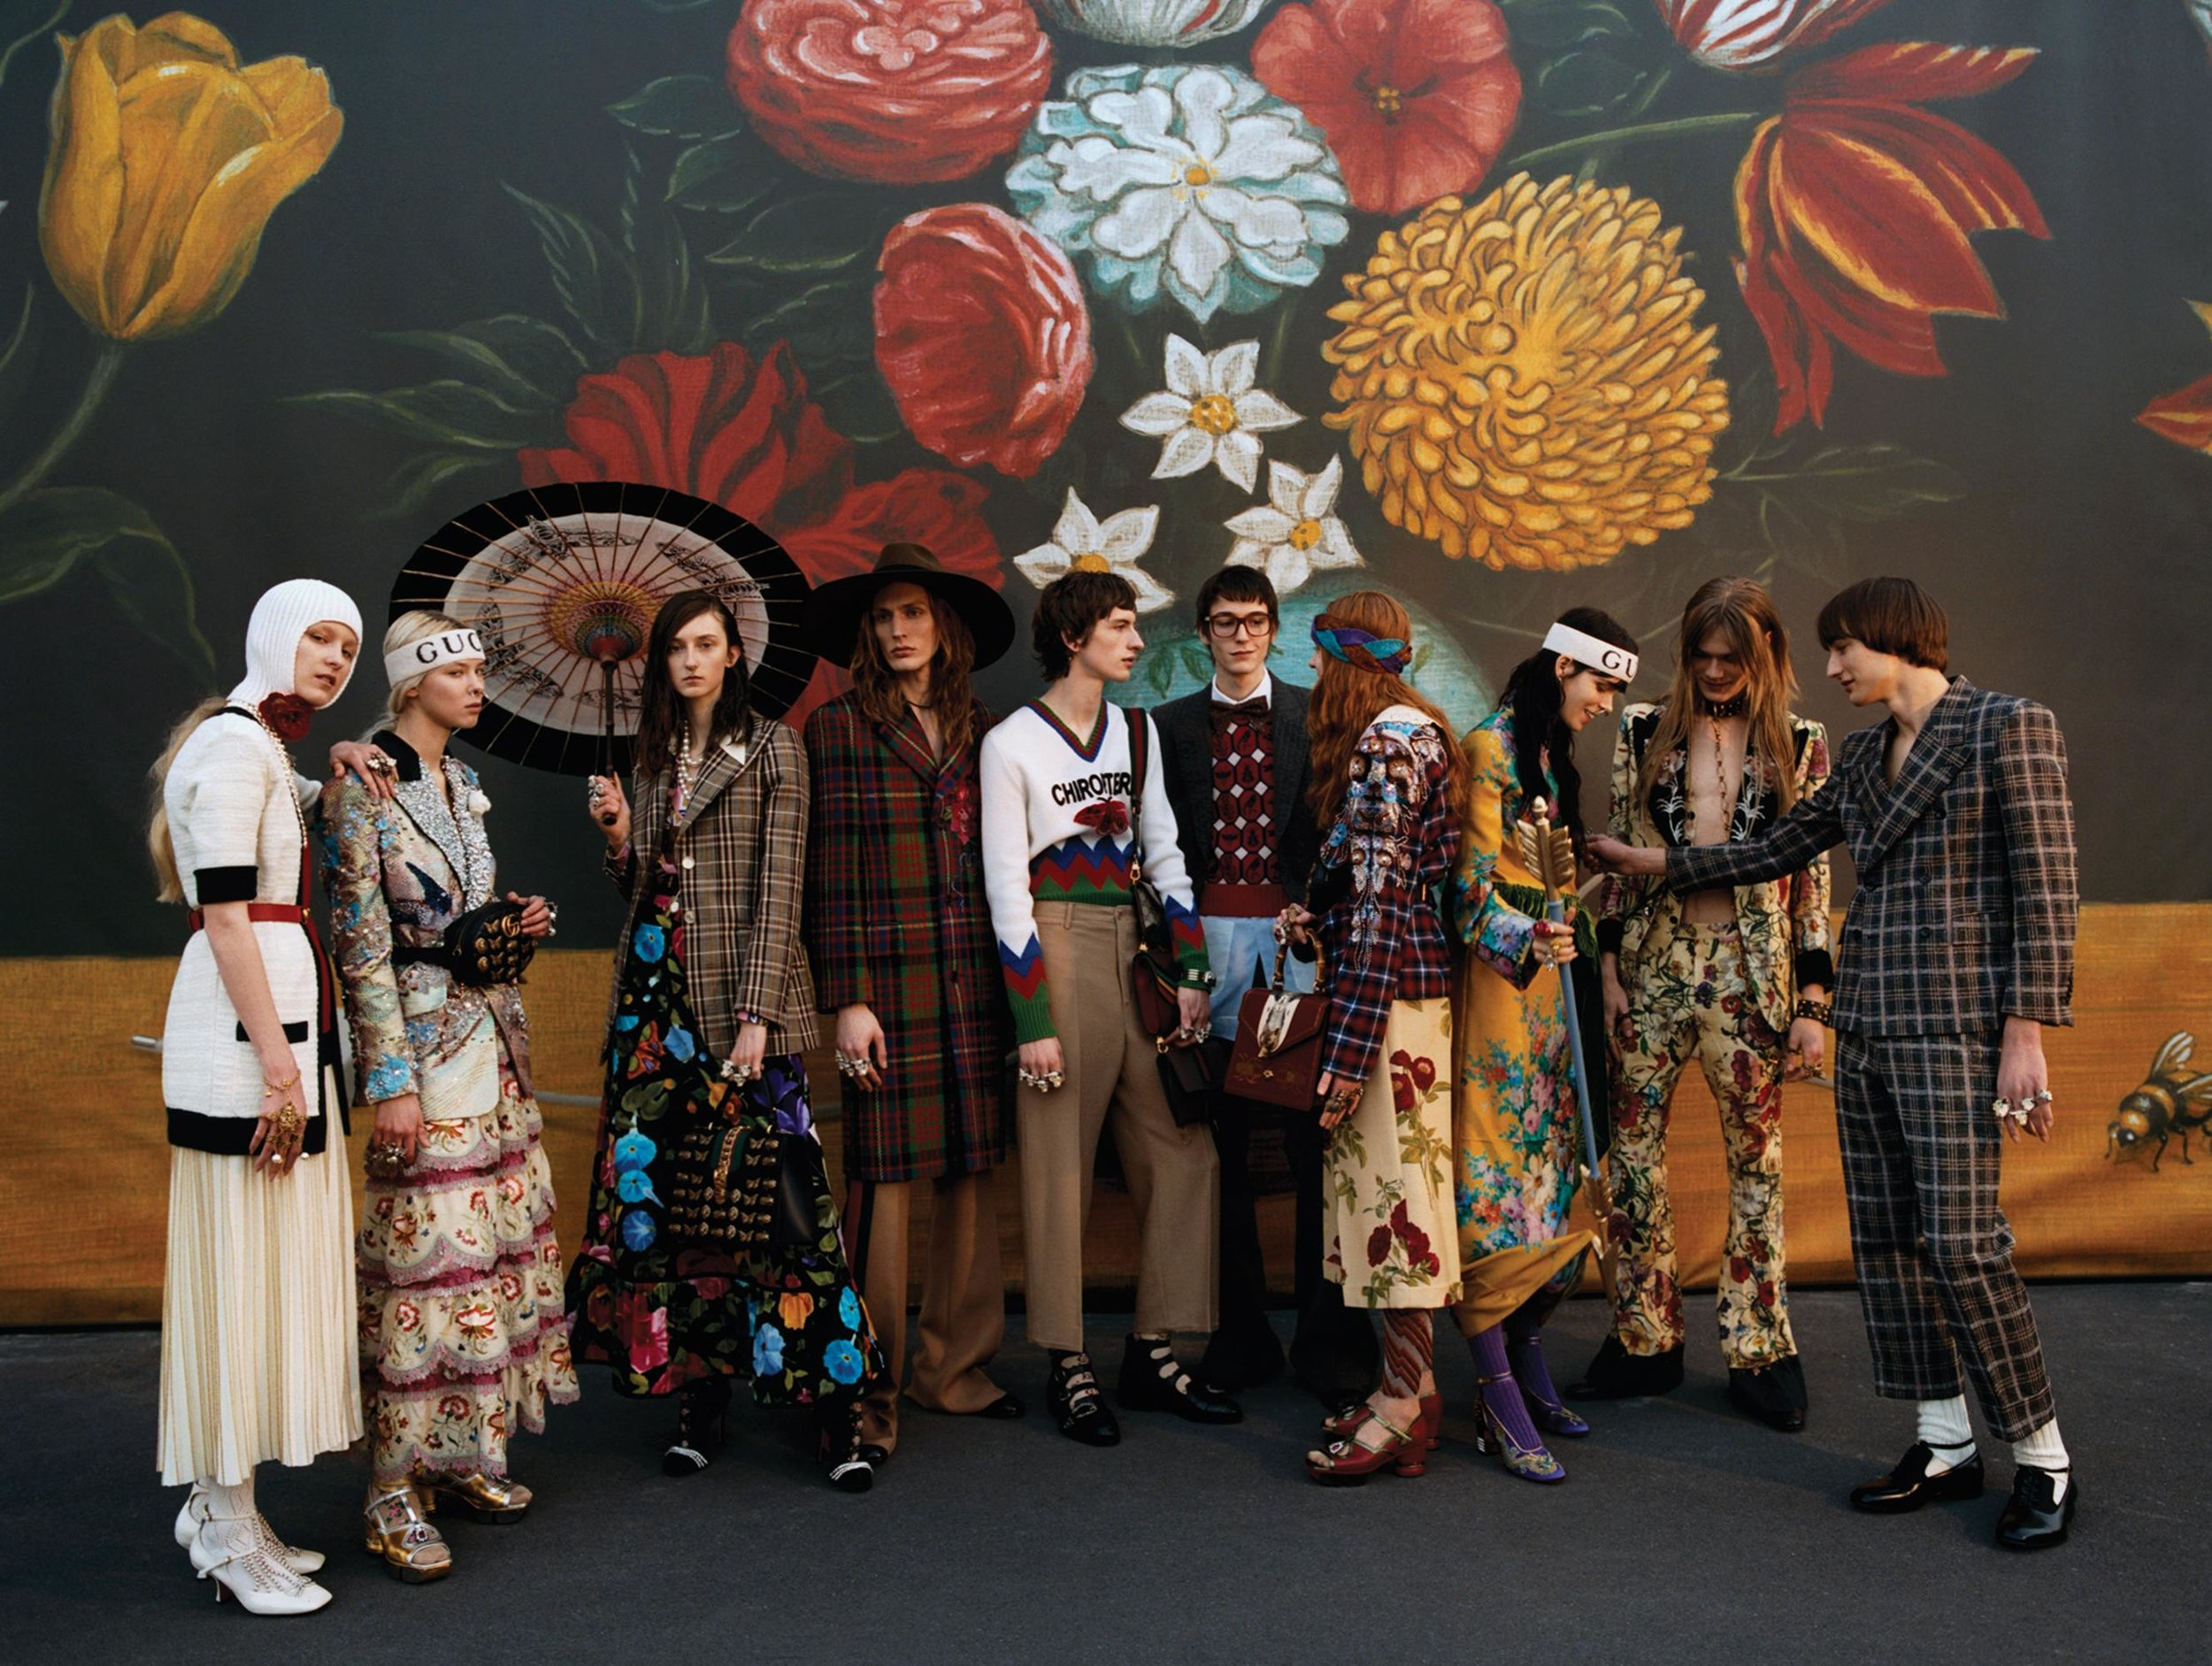 FLOWER POWER | Models wearing pieces from the fall 2017 Gucci collection, at the brand's headquarters in Milan.PHOTO:QUENTIN DE BRIEY FOR WSJ. MAGAZINE